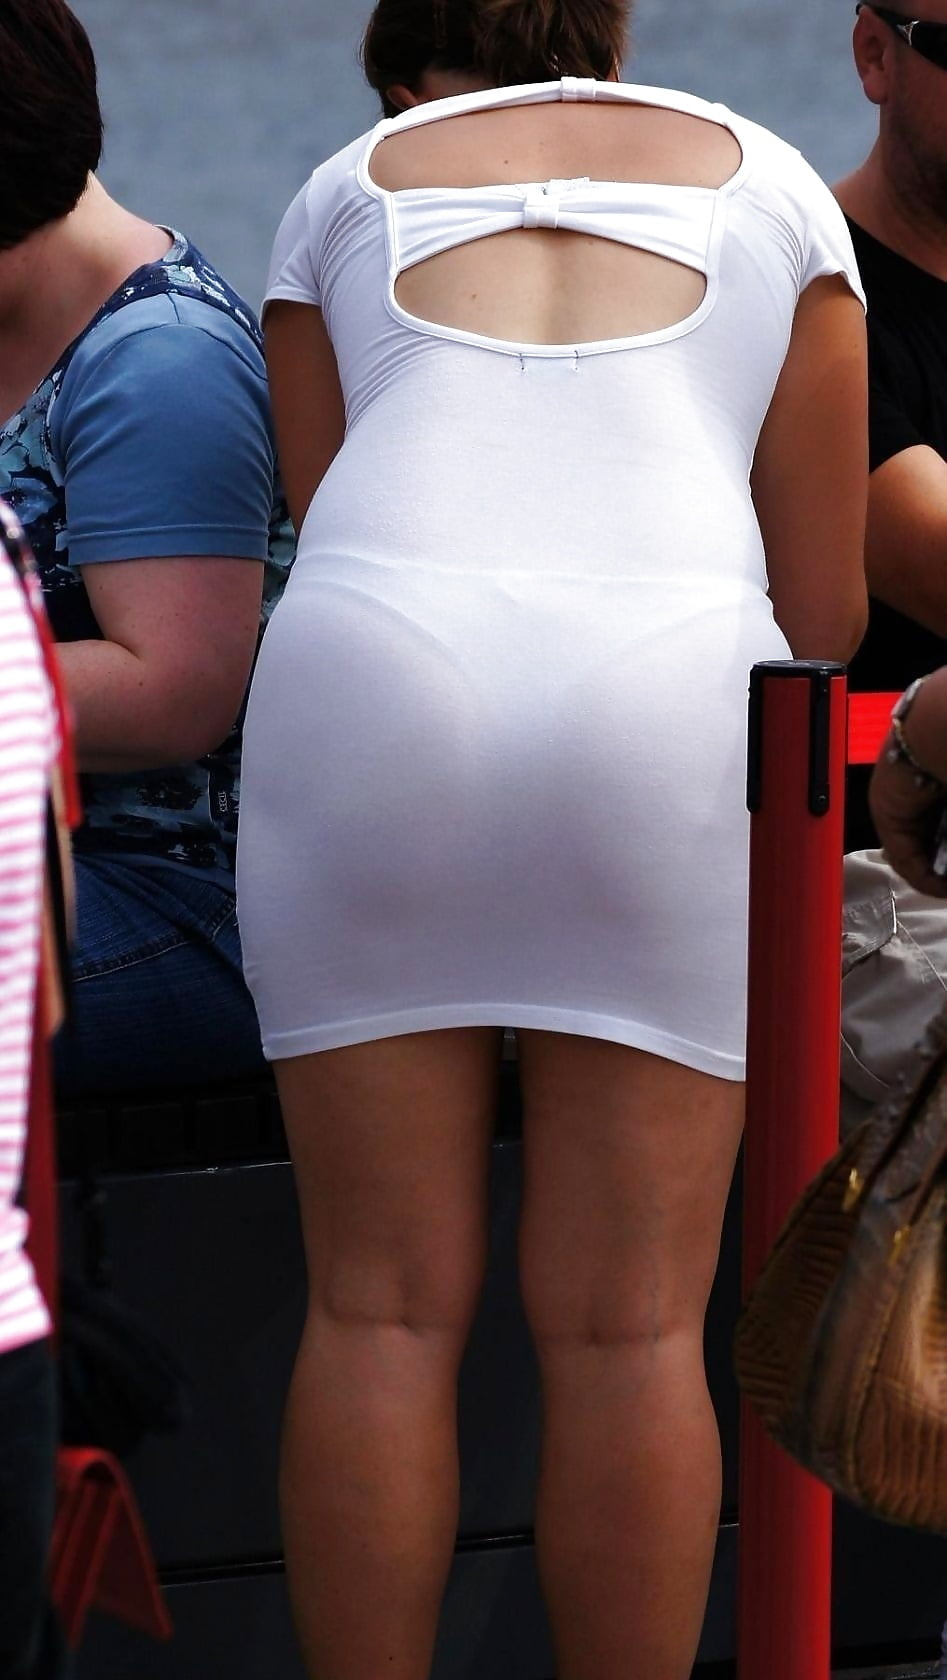 ass-in-see-thru-clothes